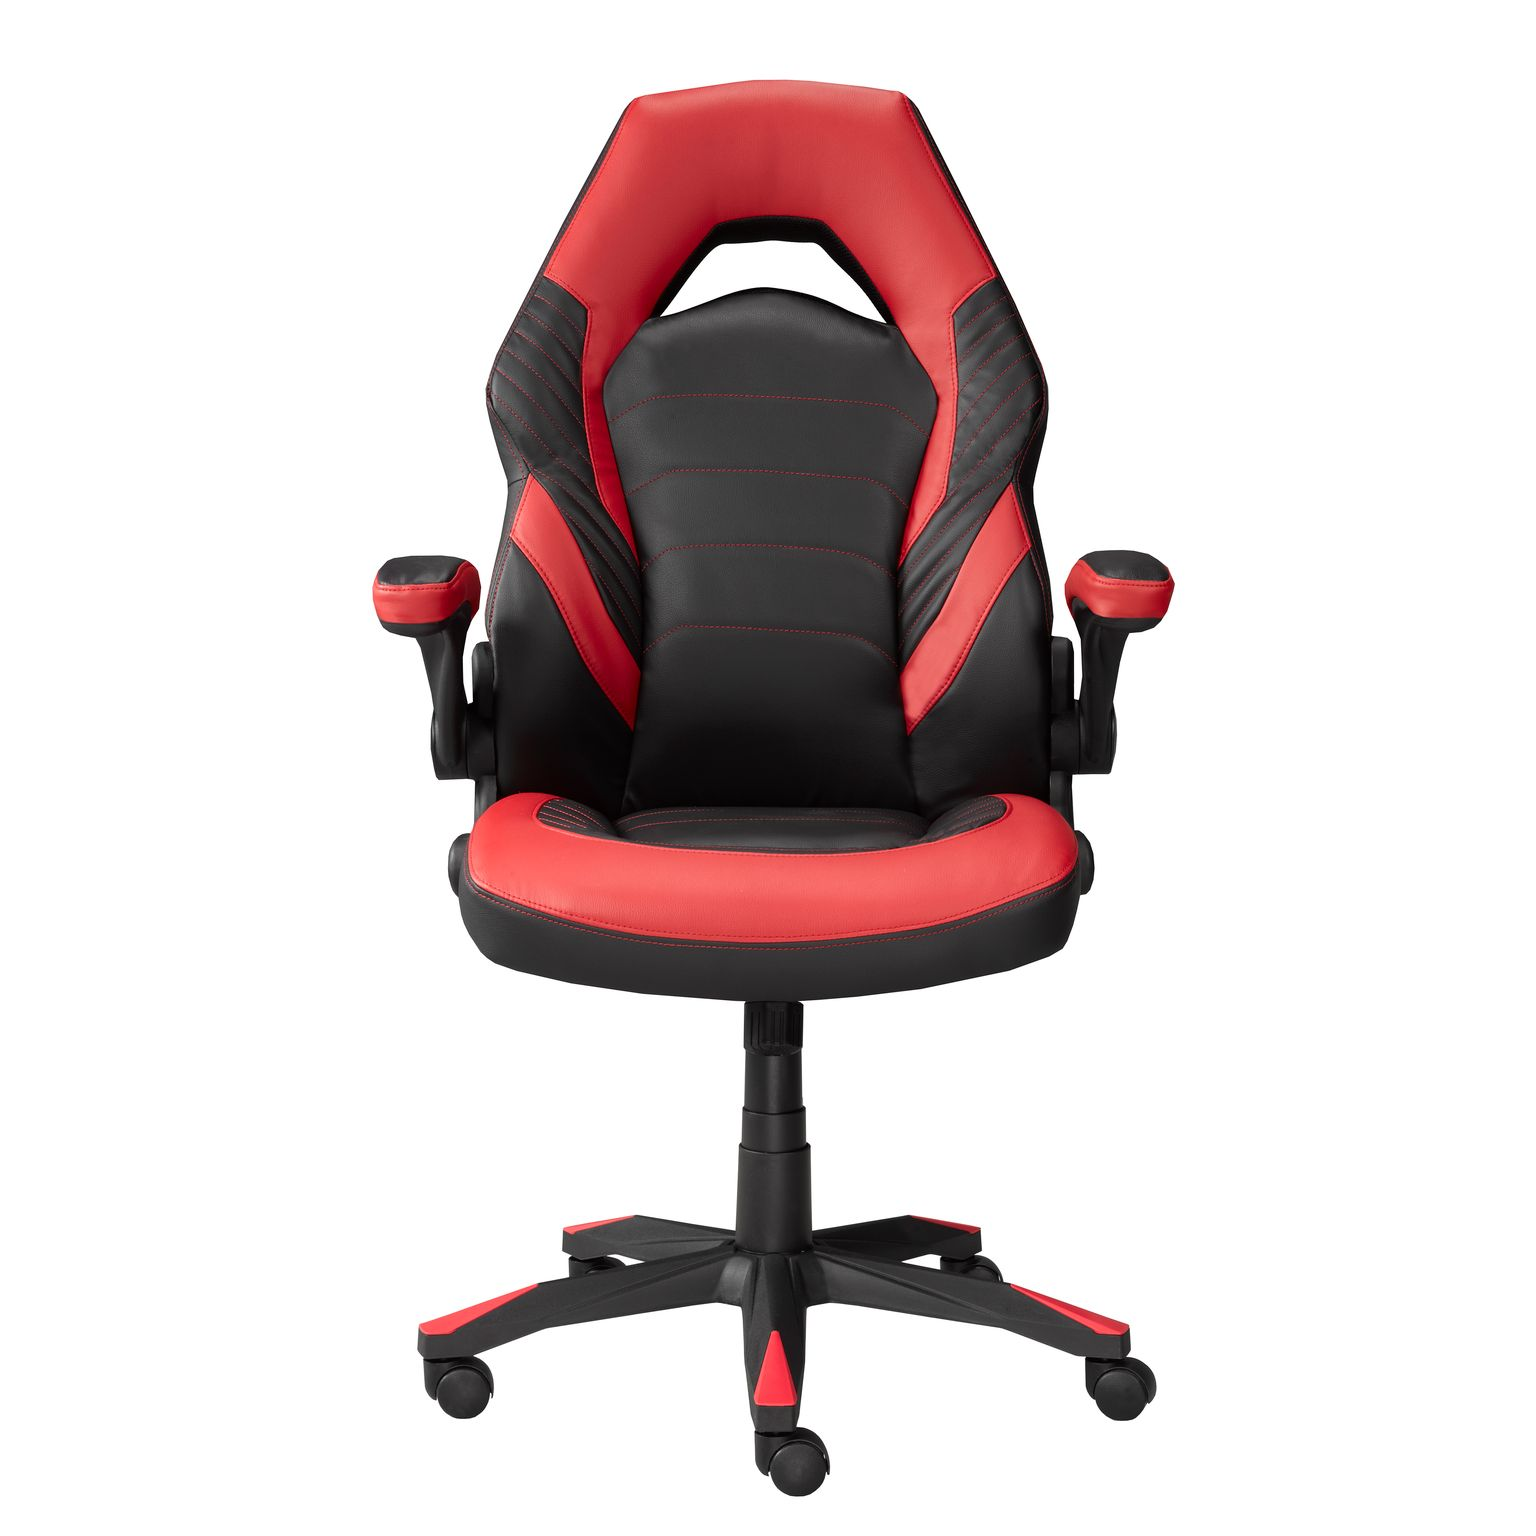 MIA OFFICE CHAIR - BLACK/RED